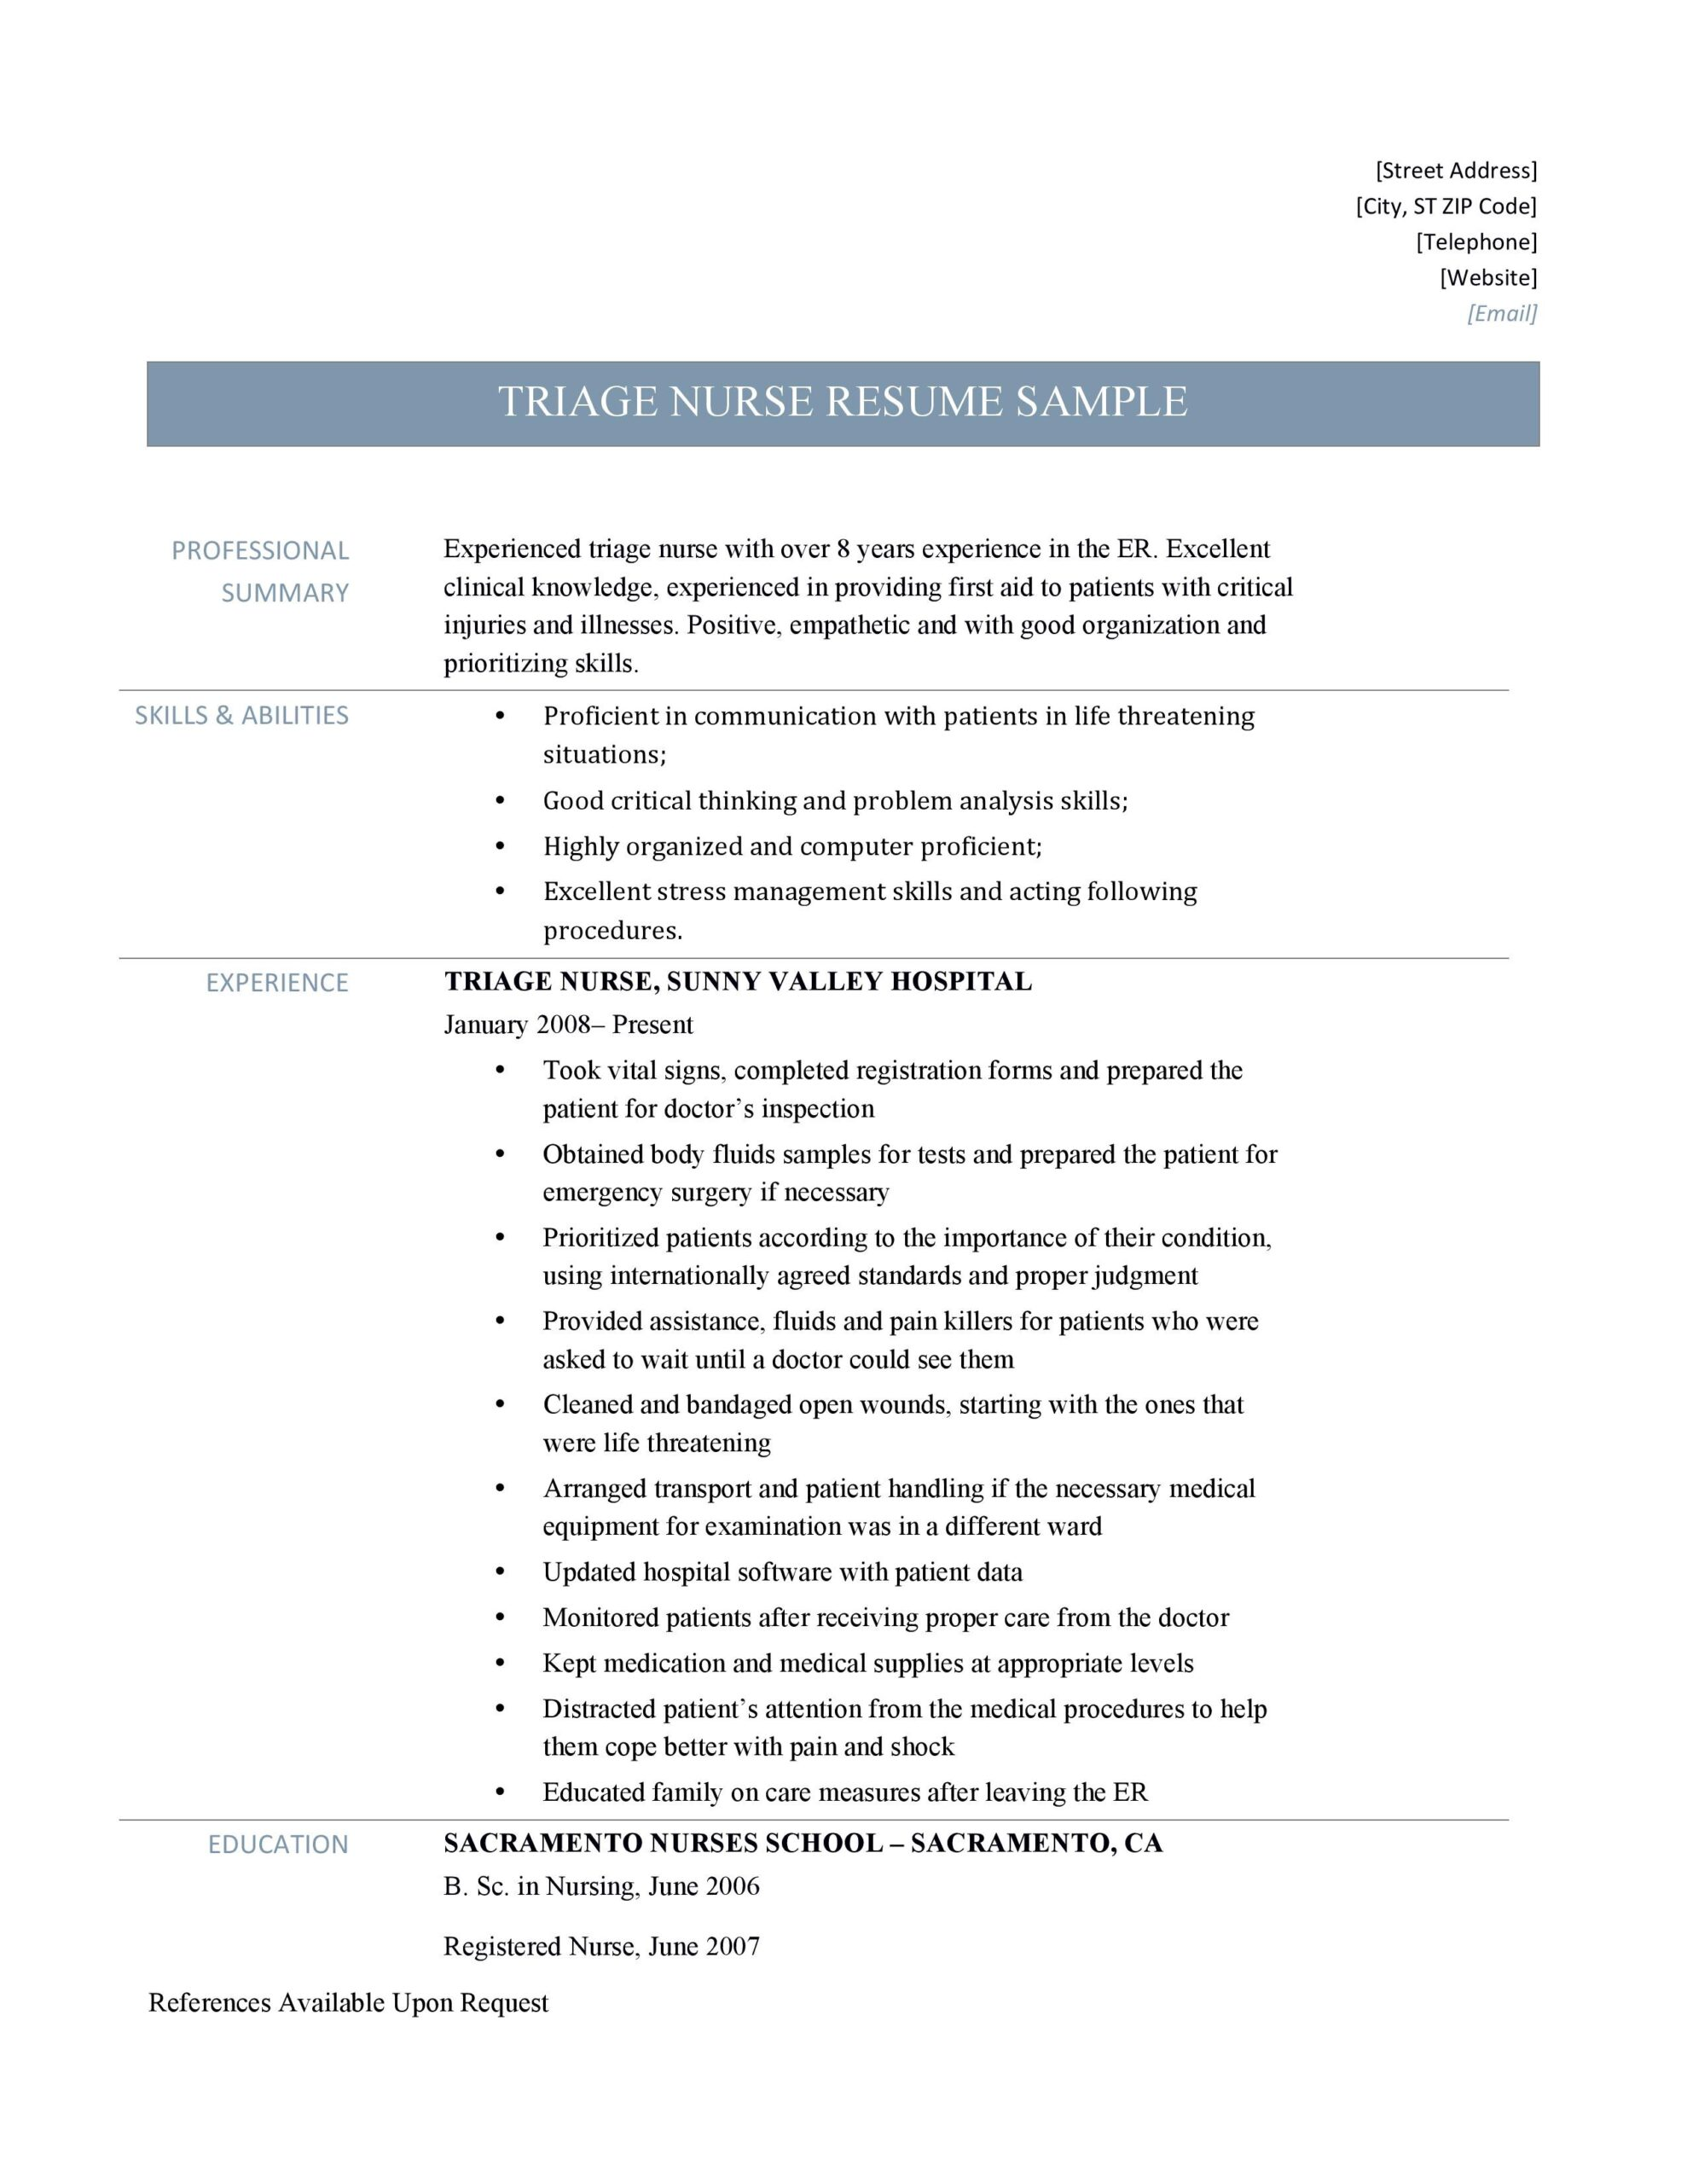 triage nurse resume sample and job description by builders medium examples for nursing Resume Resume Examples For Nursing Jobs